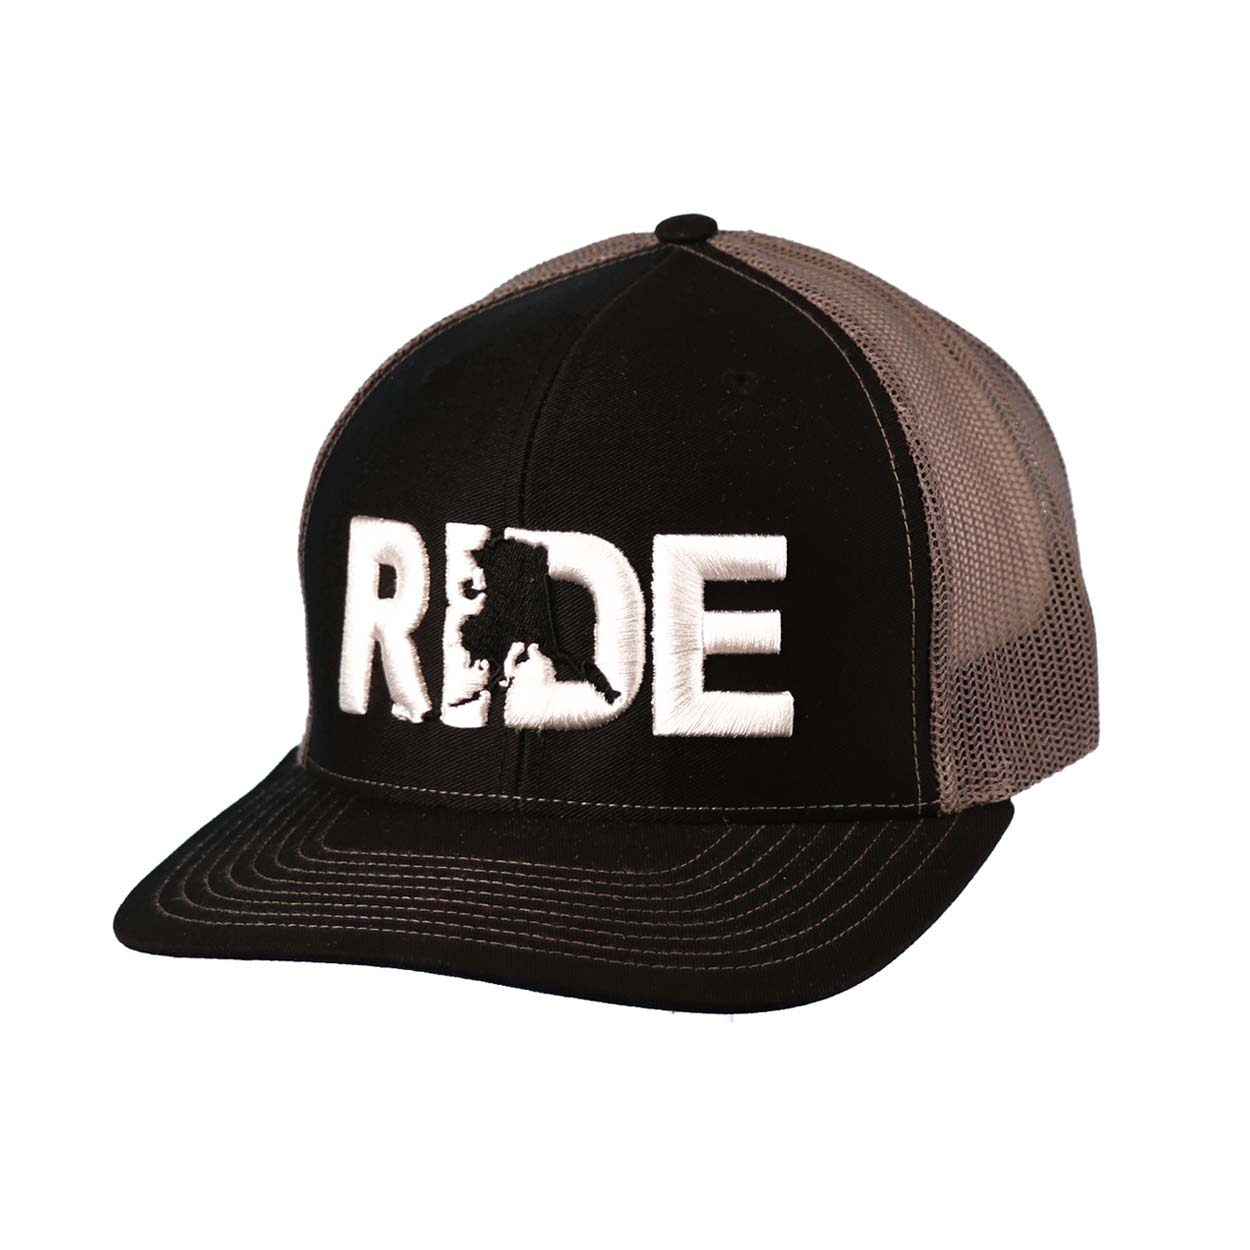 Ride Alaska Classic Embroidered Snapback Trucker Hat Black/White